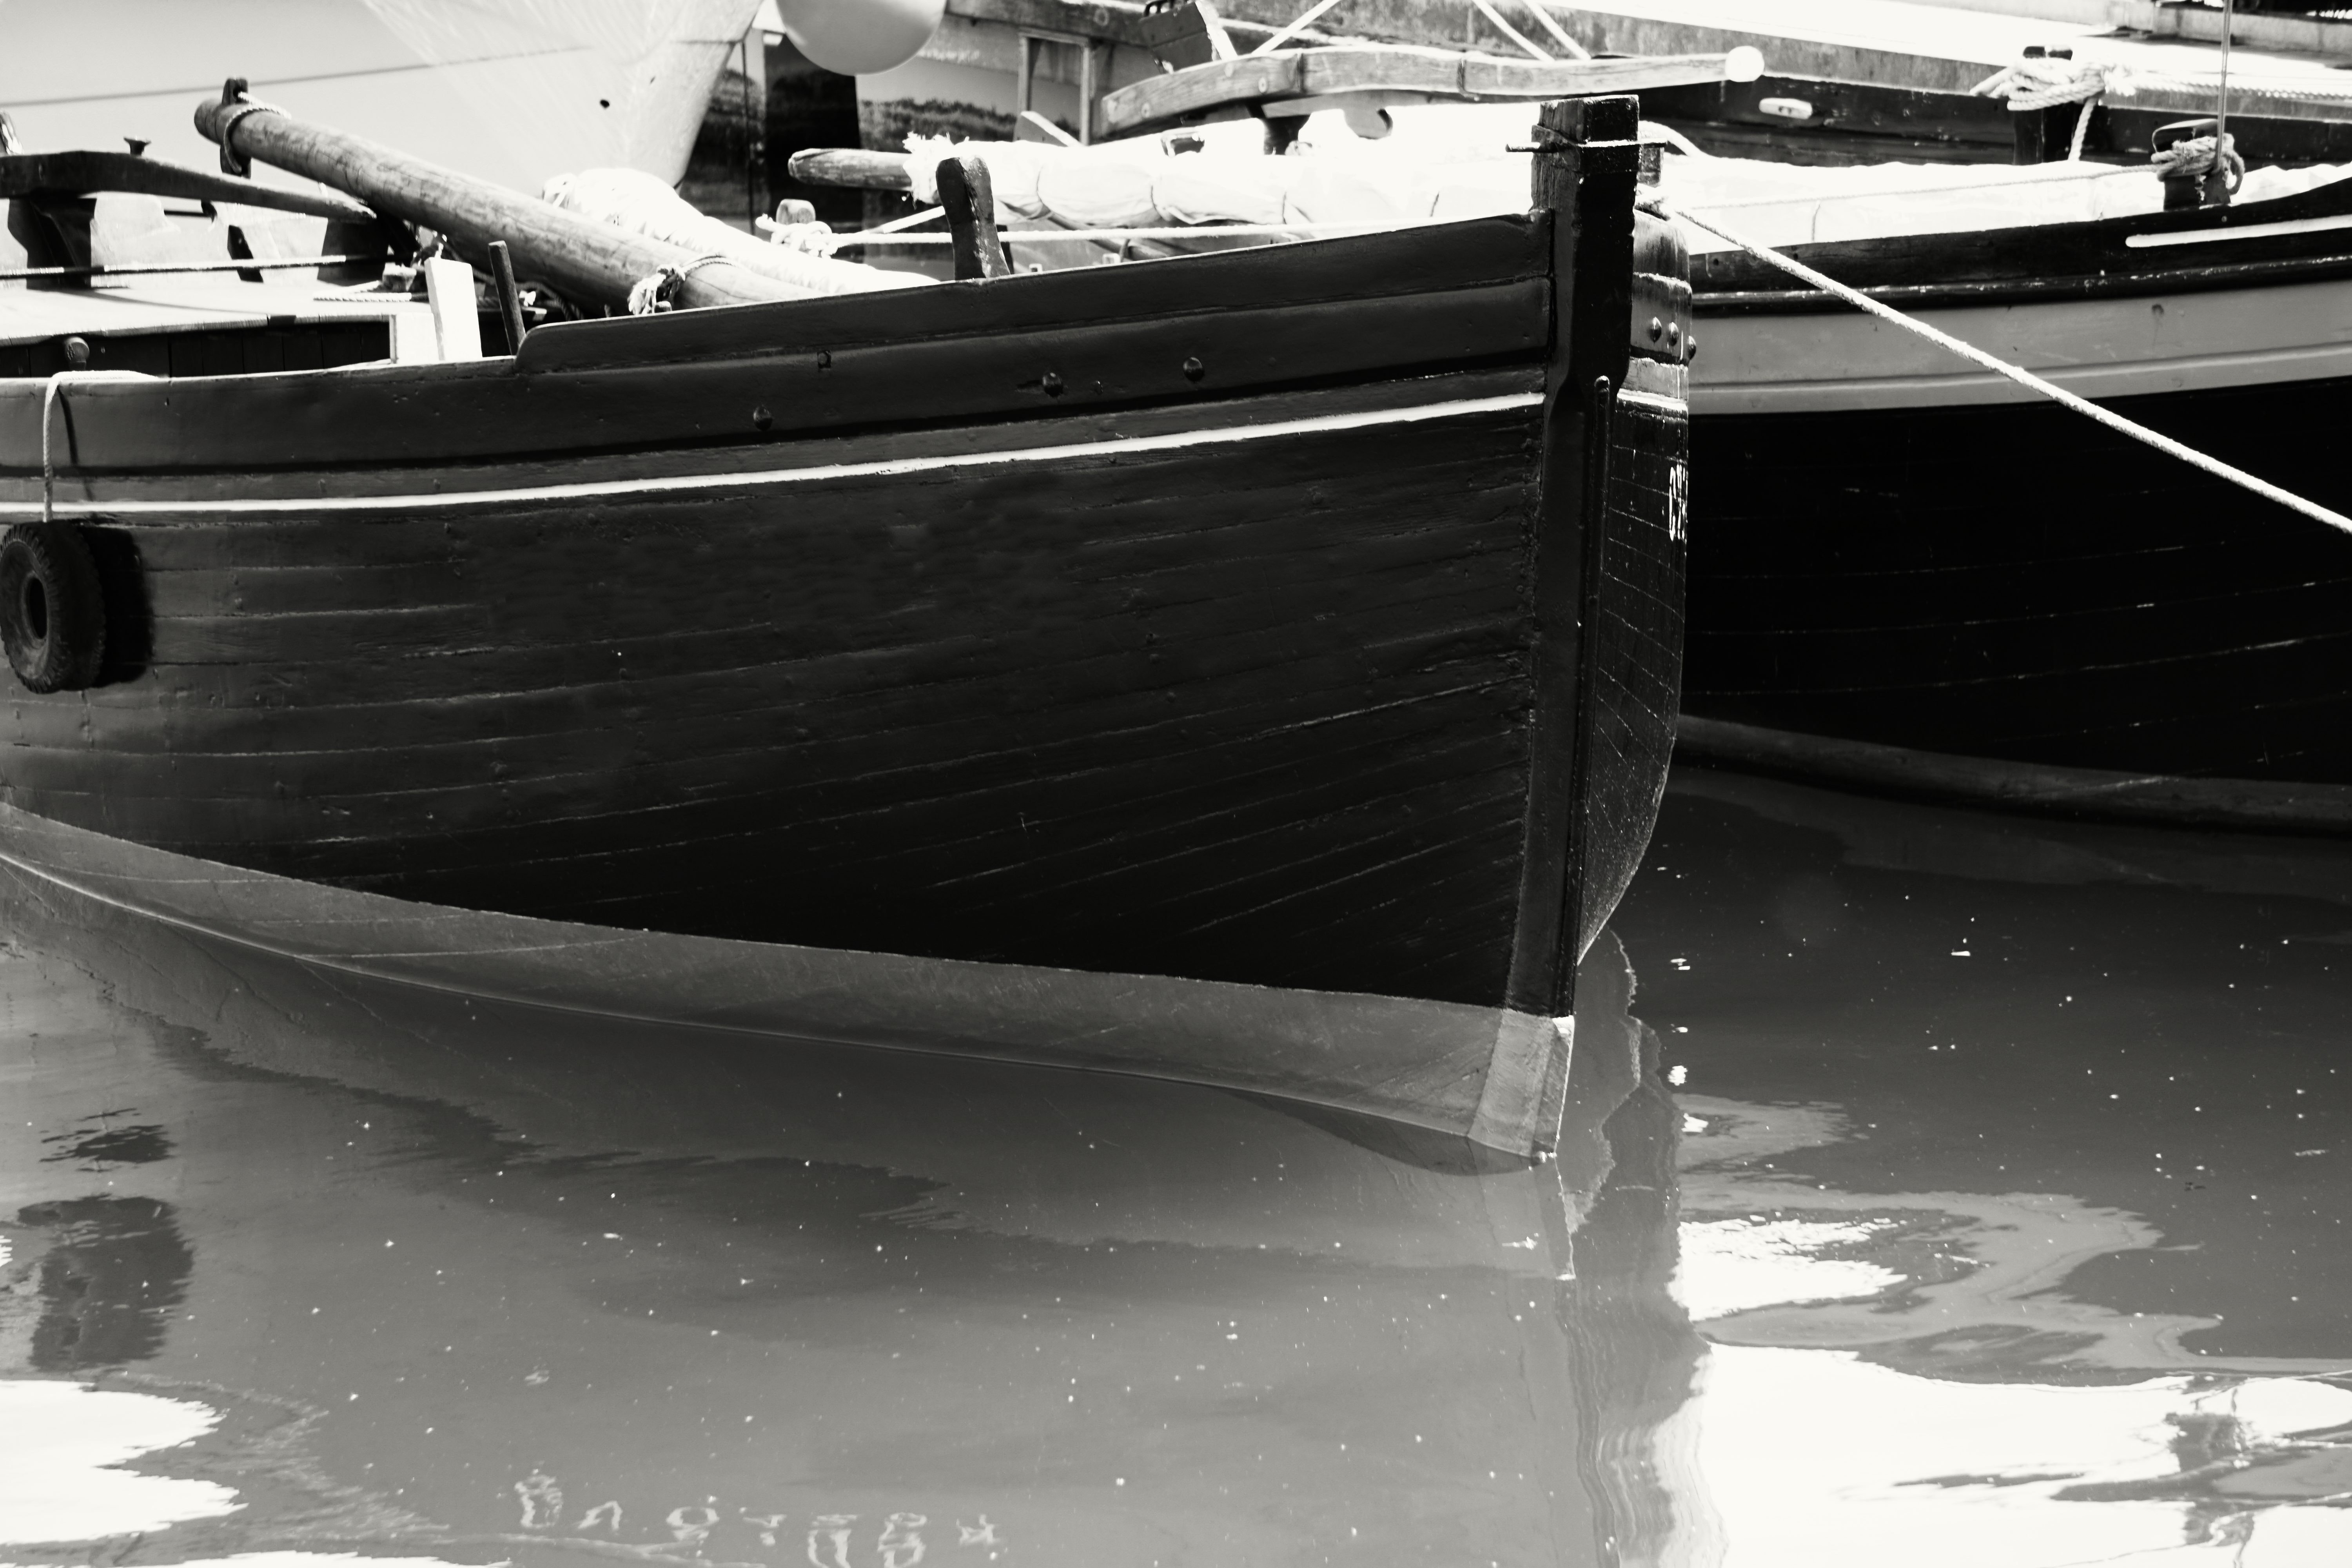 Gray Scale Photo of Boat on Body of Water, Black-and-white, Boats, Harbor, Harbour, HQ Photo